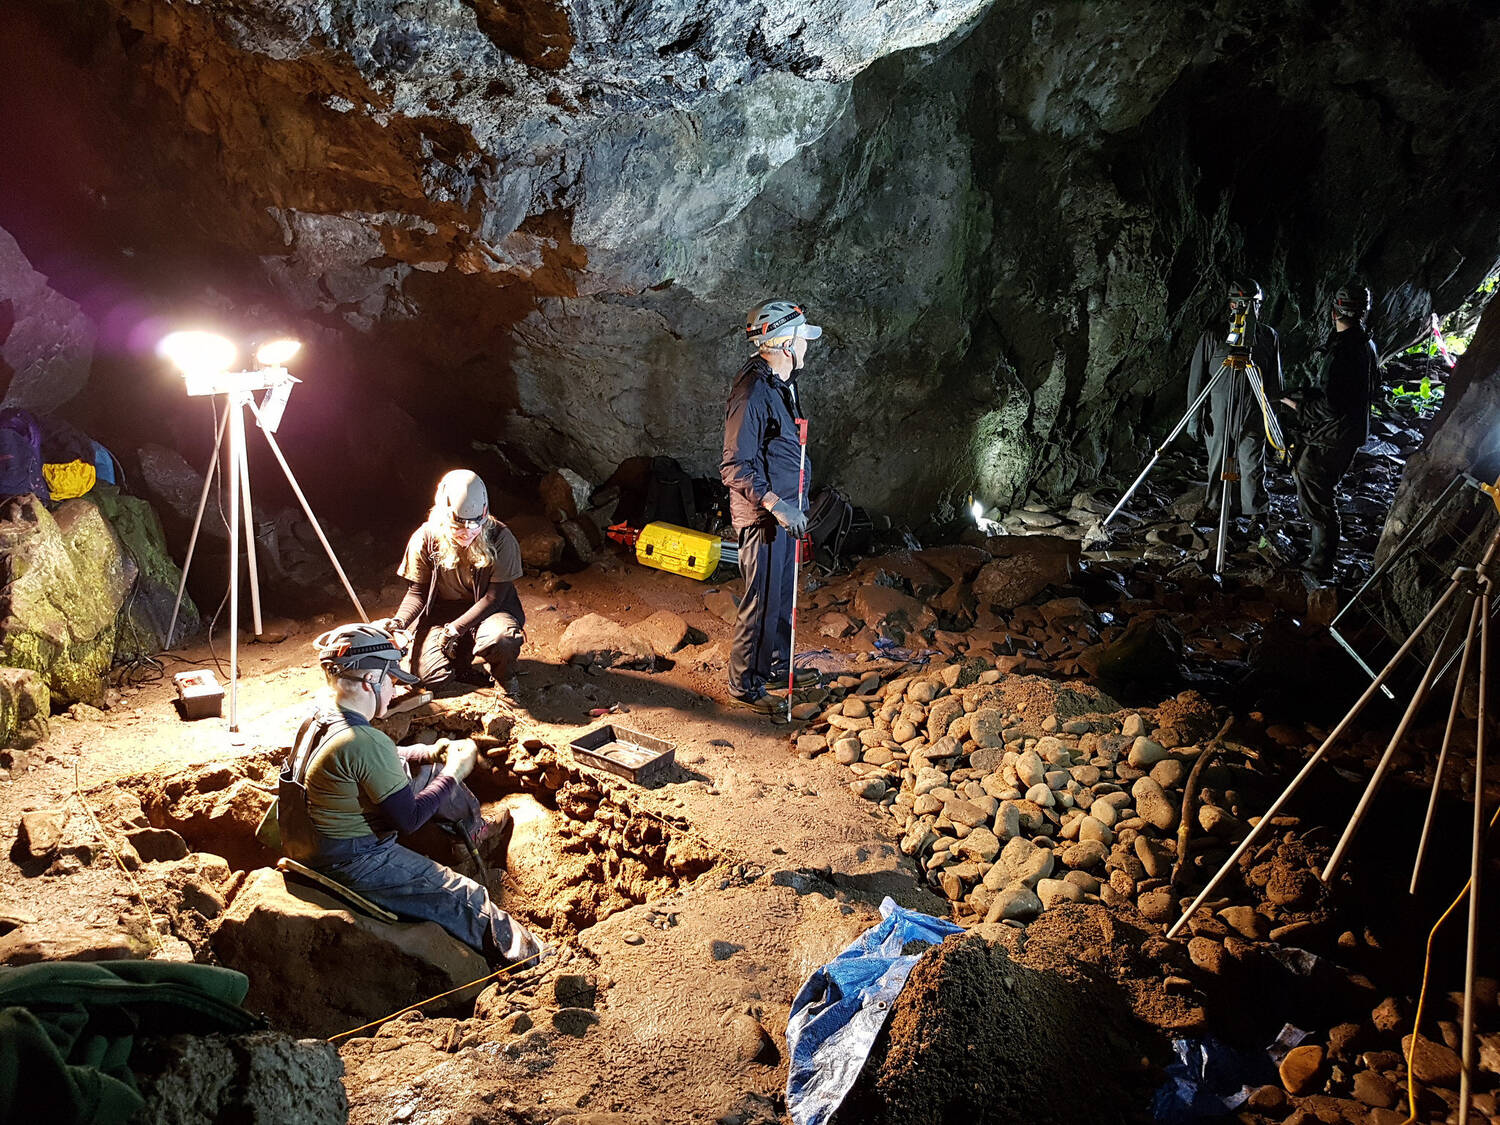 Archaeologists and volunteers worked under lamplight in the caves to make these new discoveries